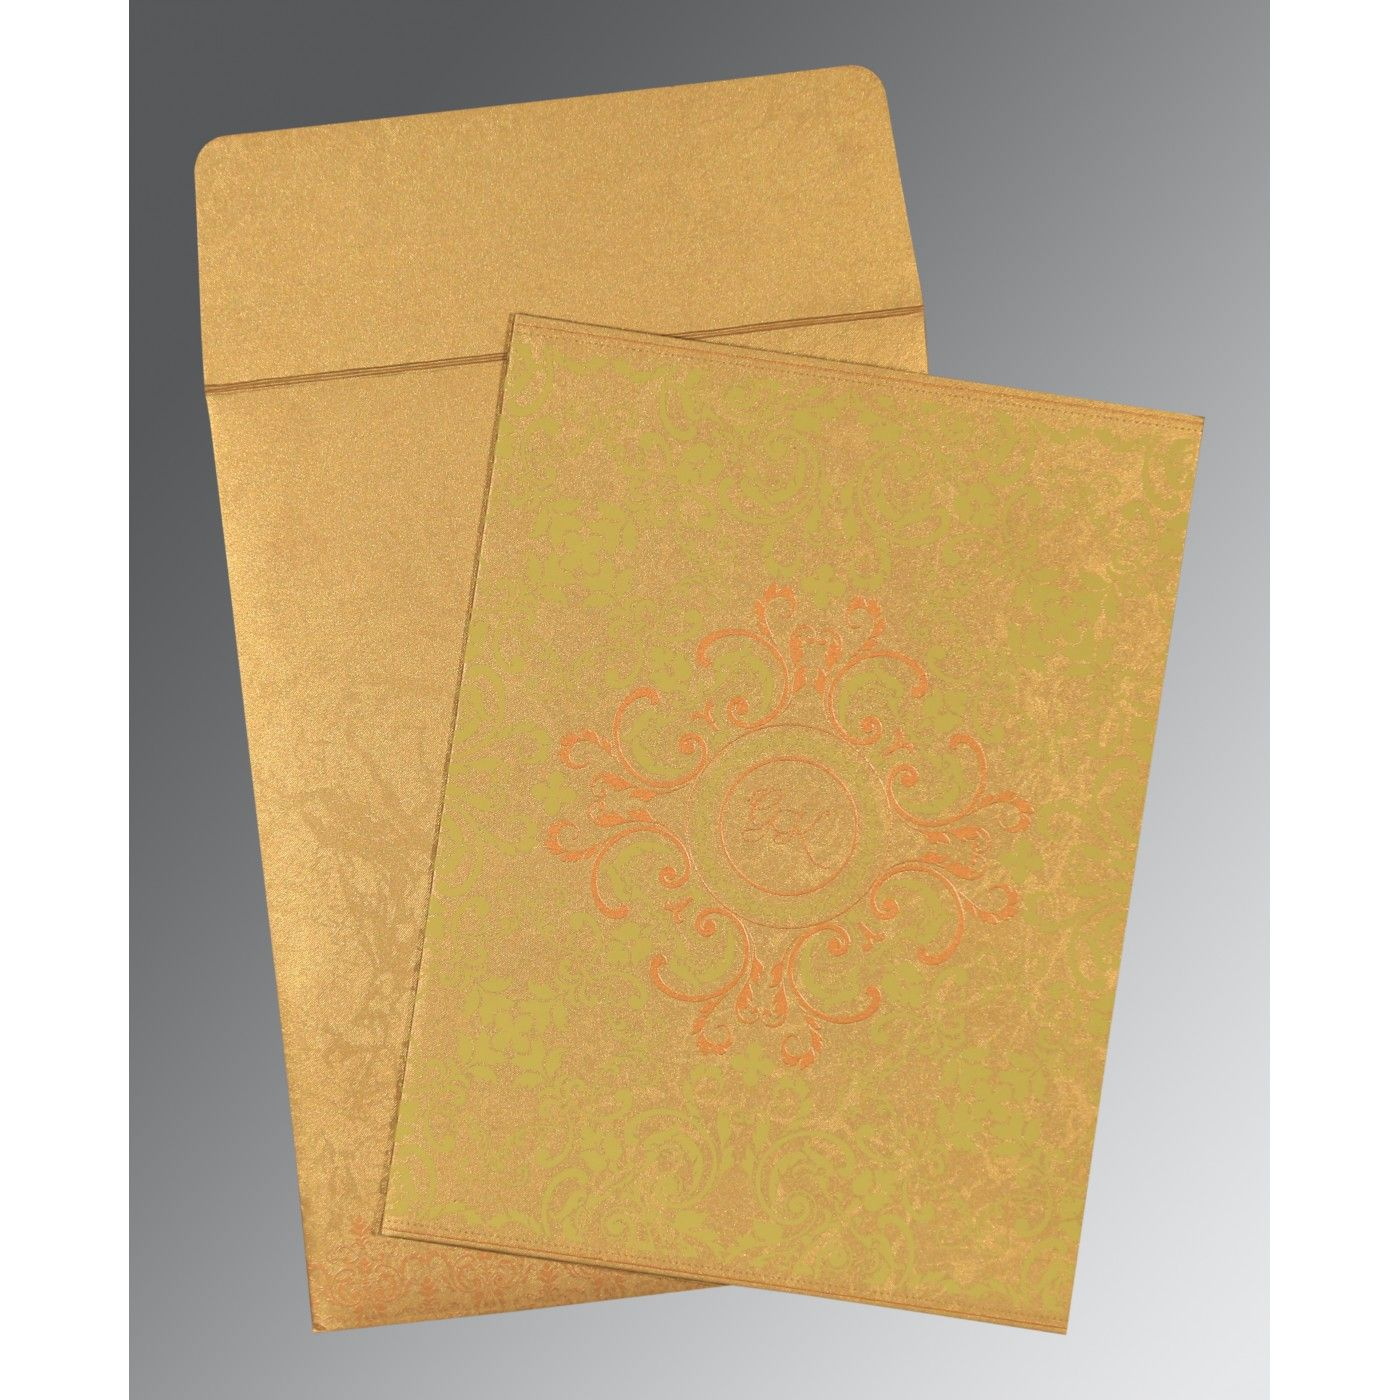 SATIN GOLD SHIMMERY SCREEN PRINTED WEDDING CARD : CRU-8244G - IndianWeddingCards